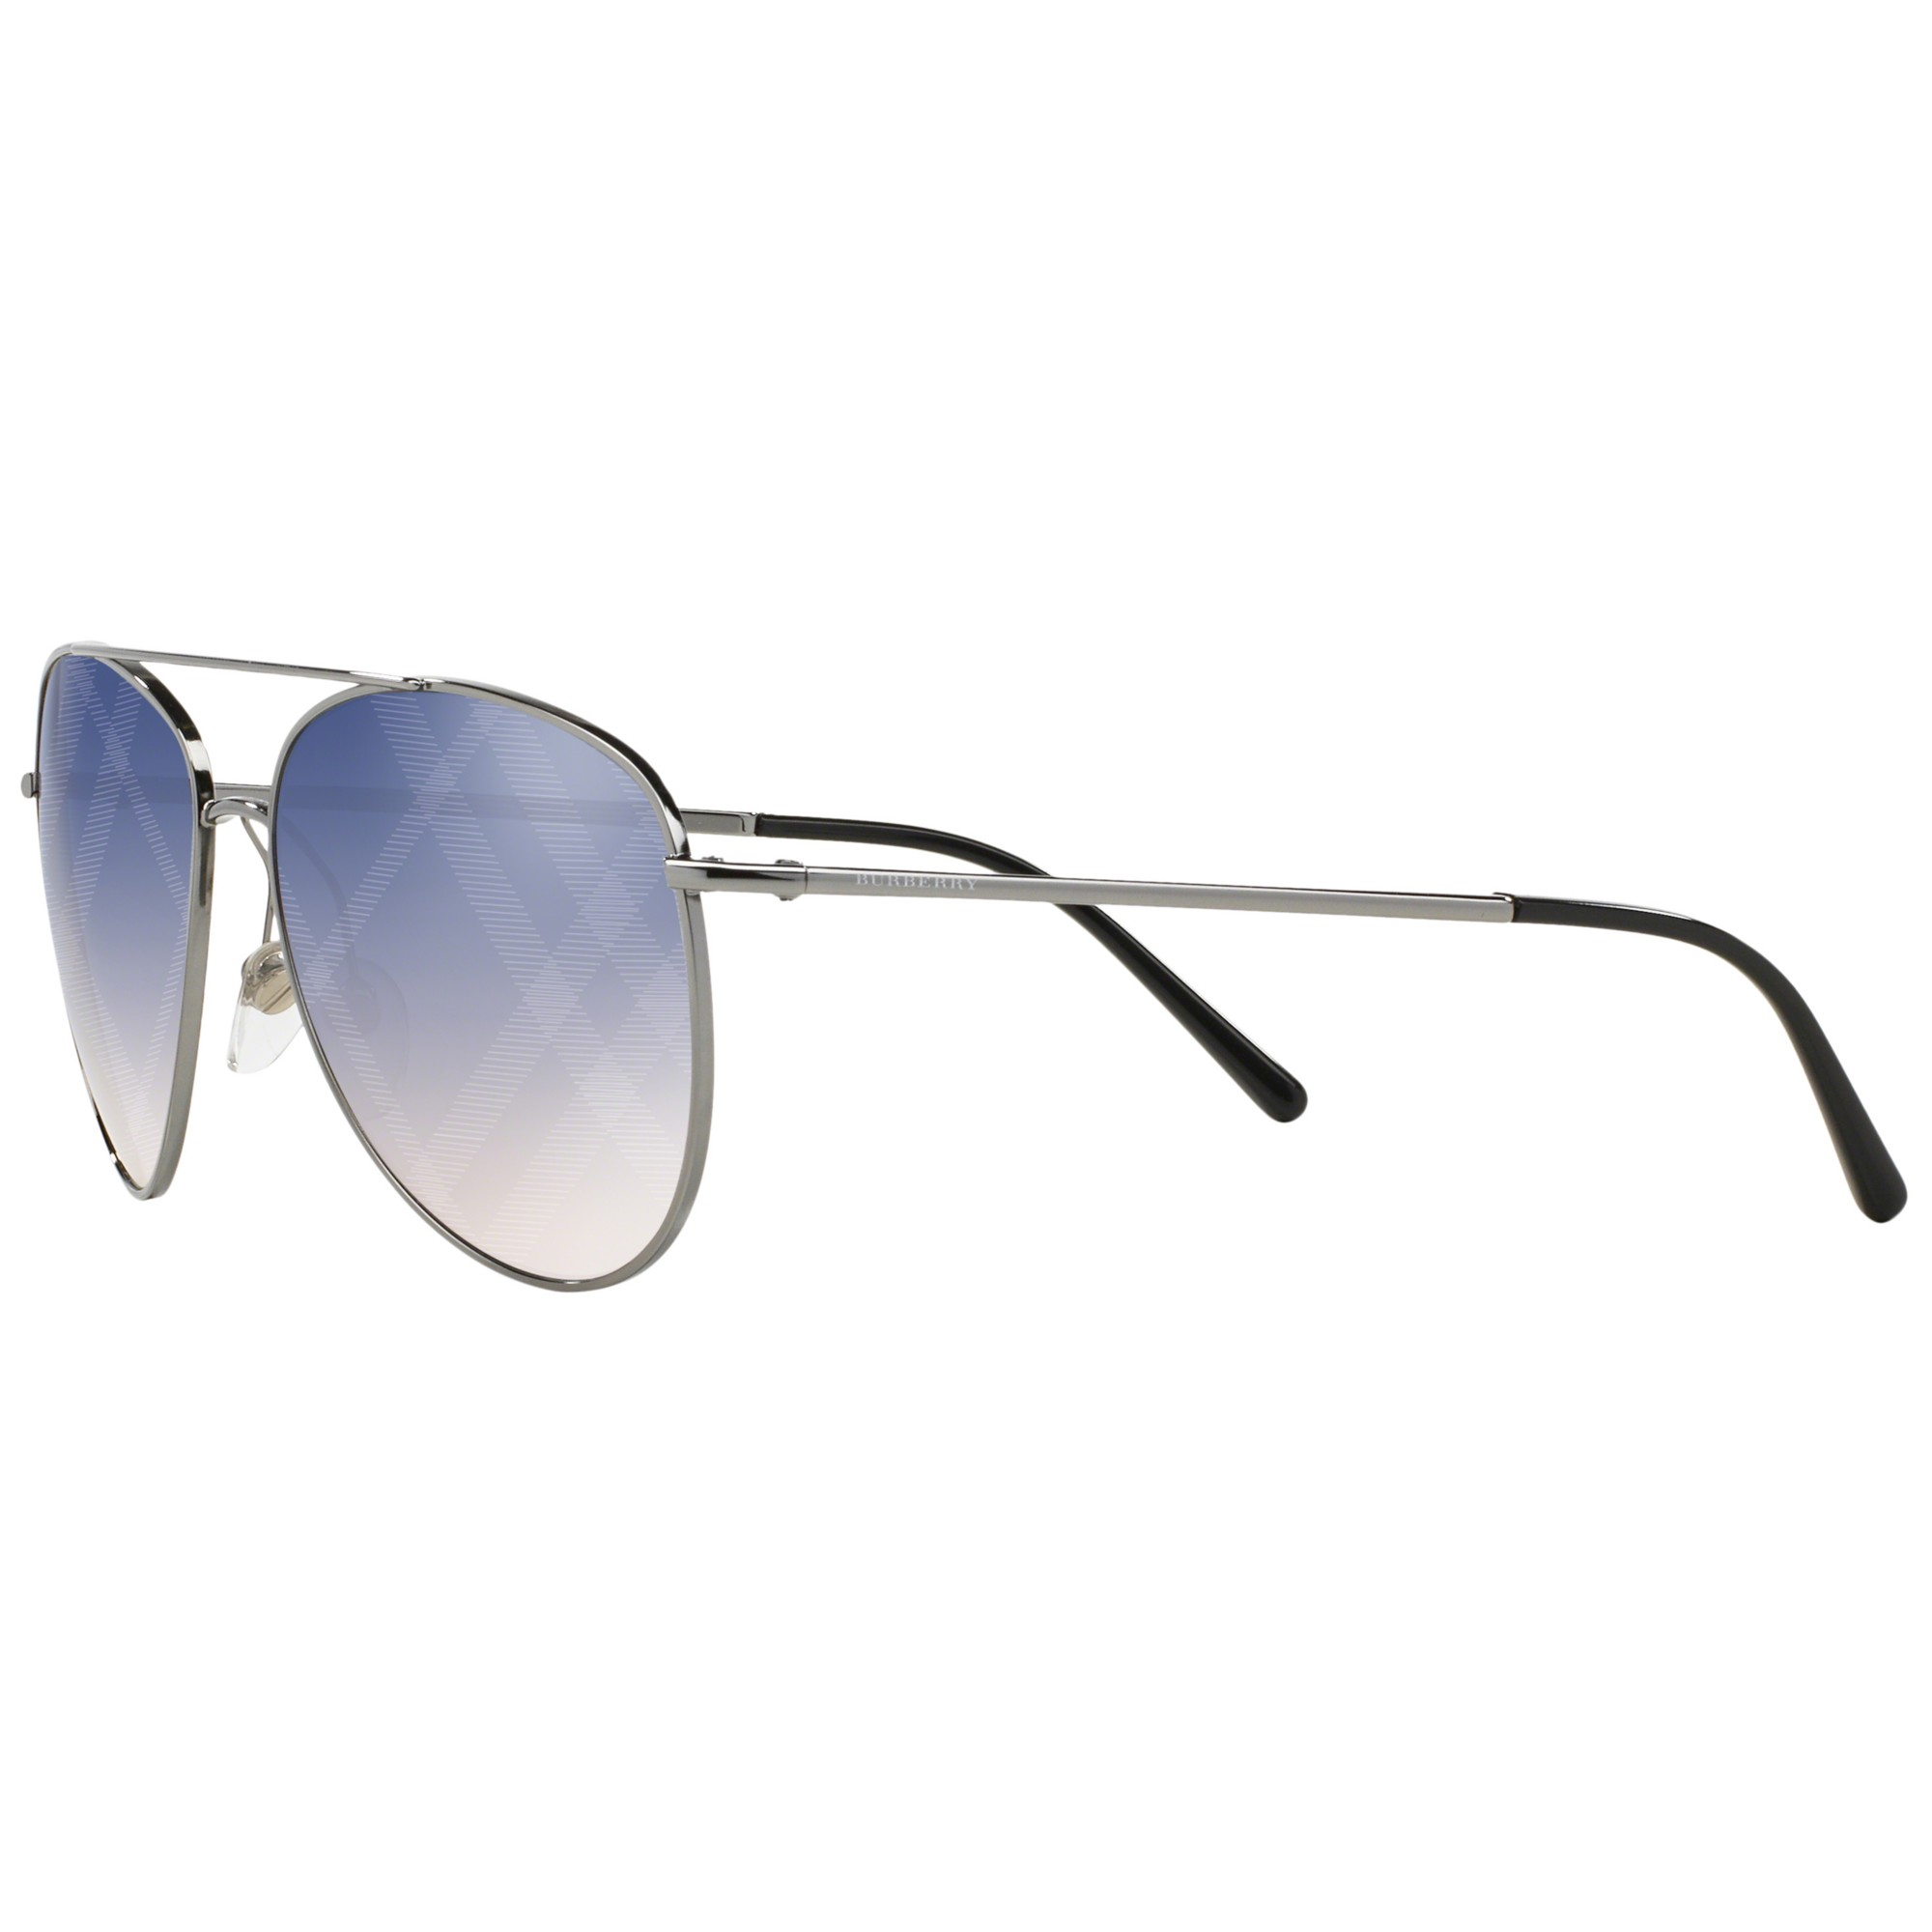 940573ef36fe Burberry Be3072 Aviator Sunglasses in Blue - Lyst